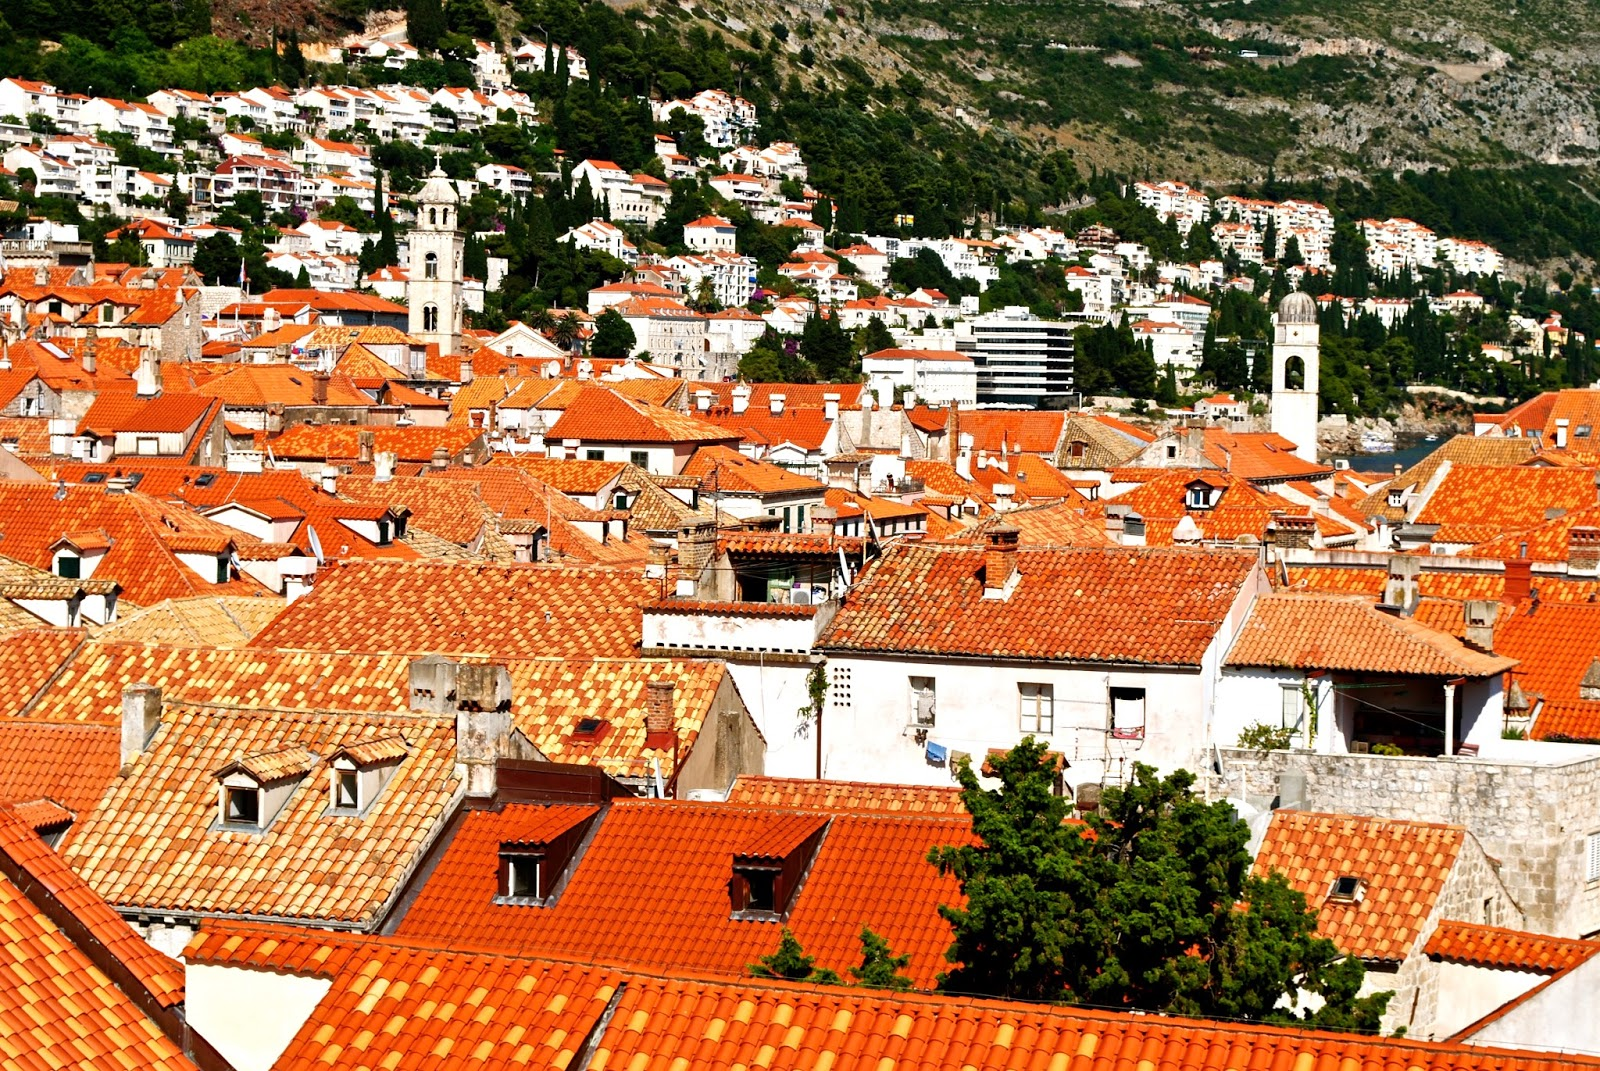 View of Croatian orange rooftops the Old Town Walls of Dubrovnik